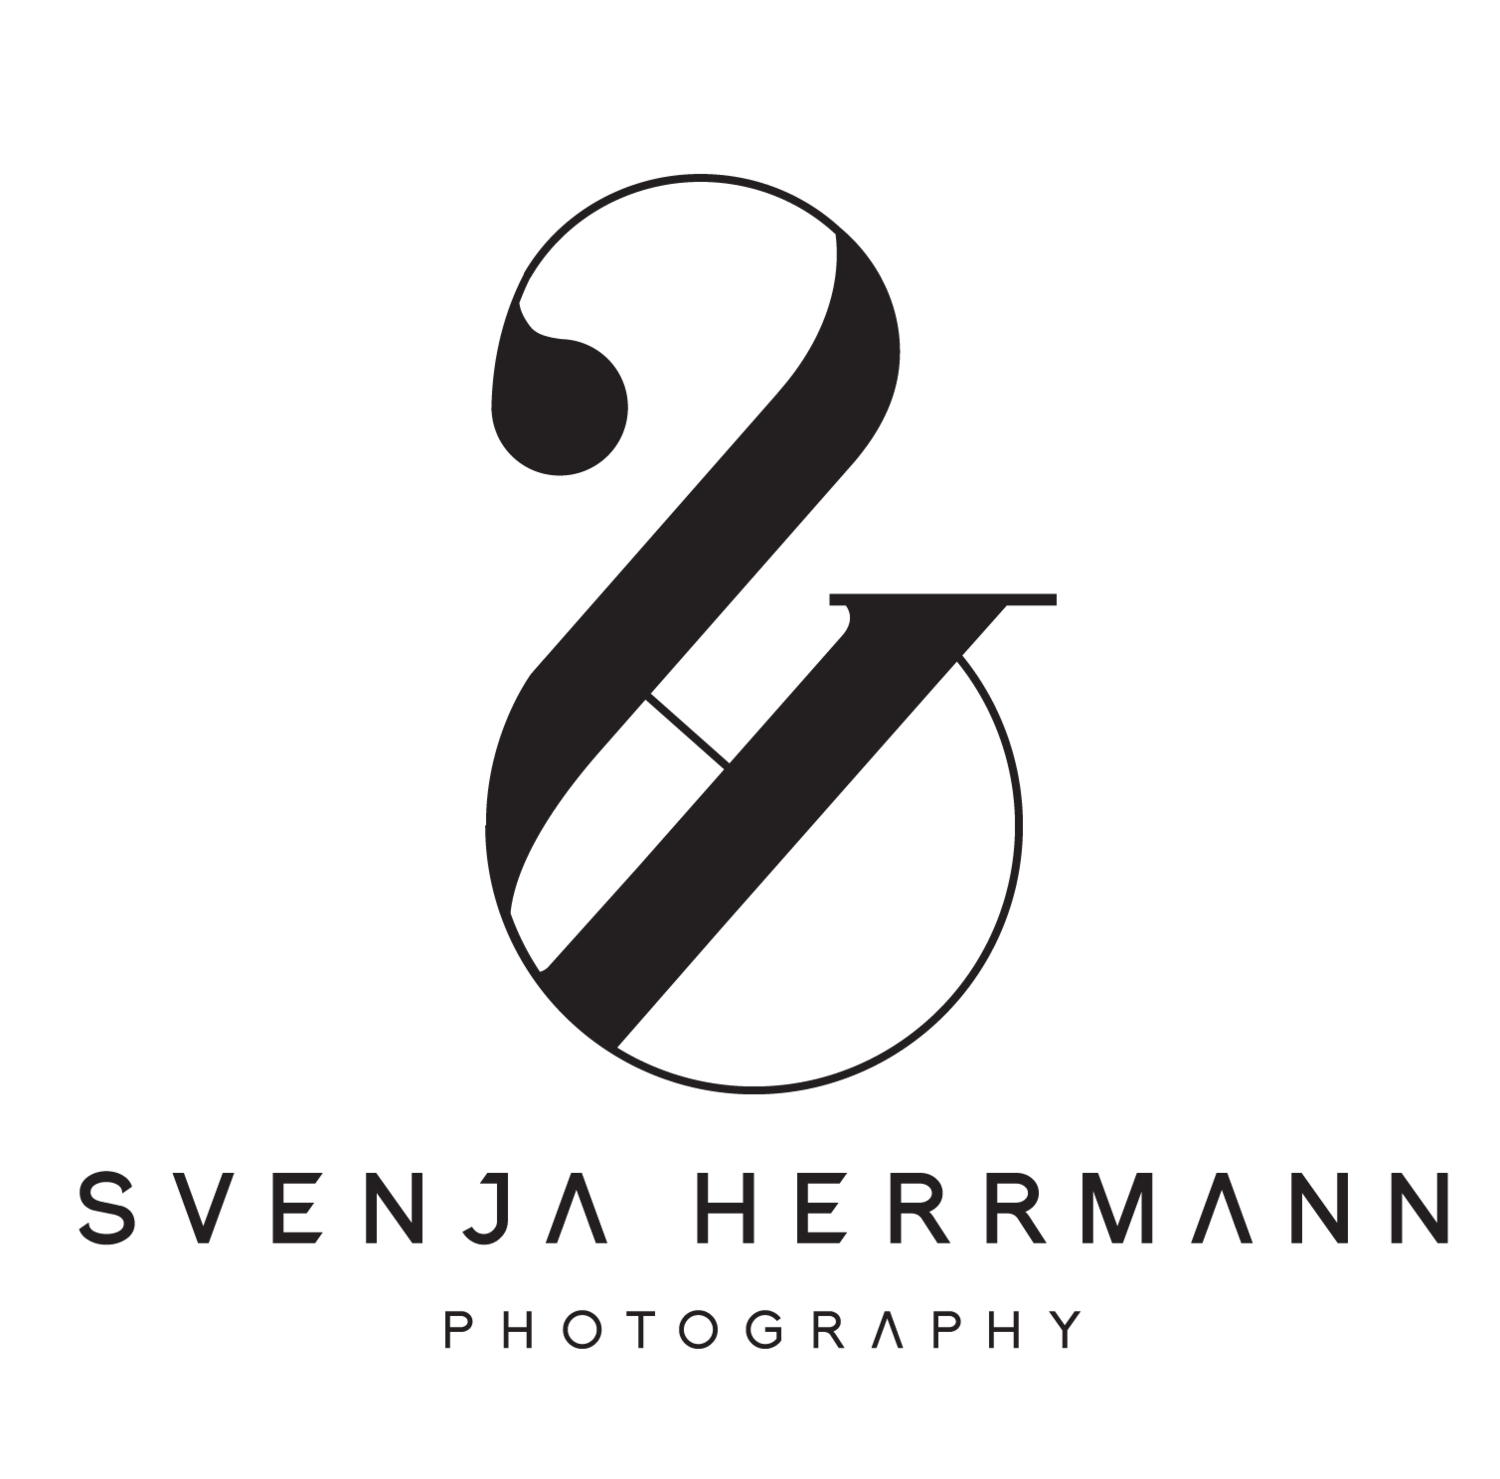 Svenja Herrmann Photography